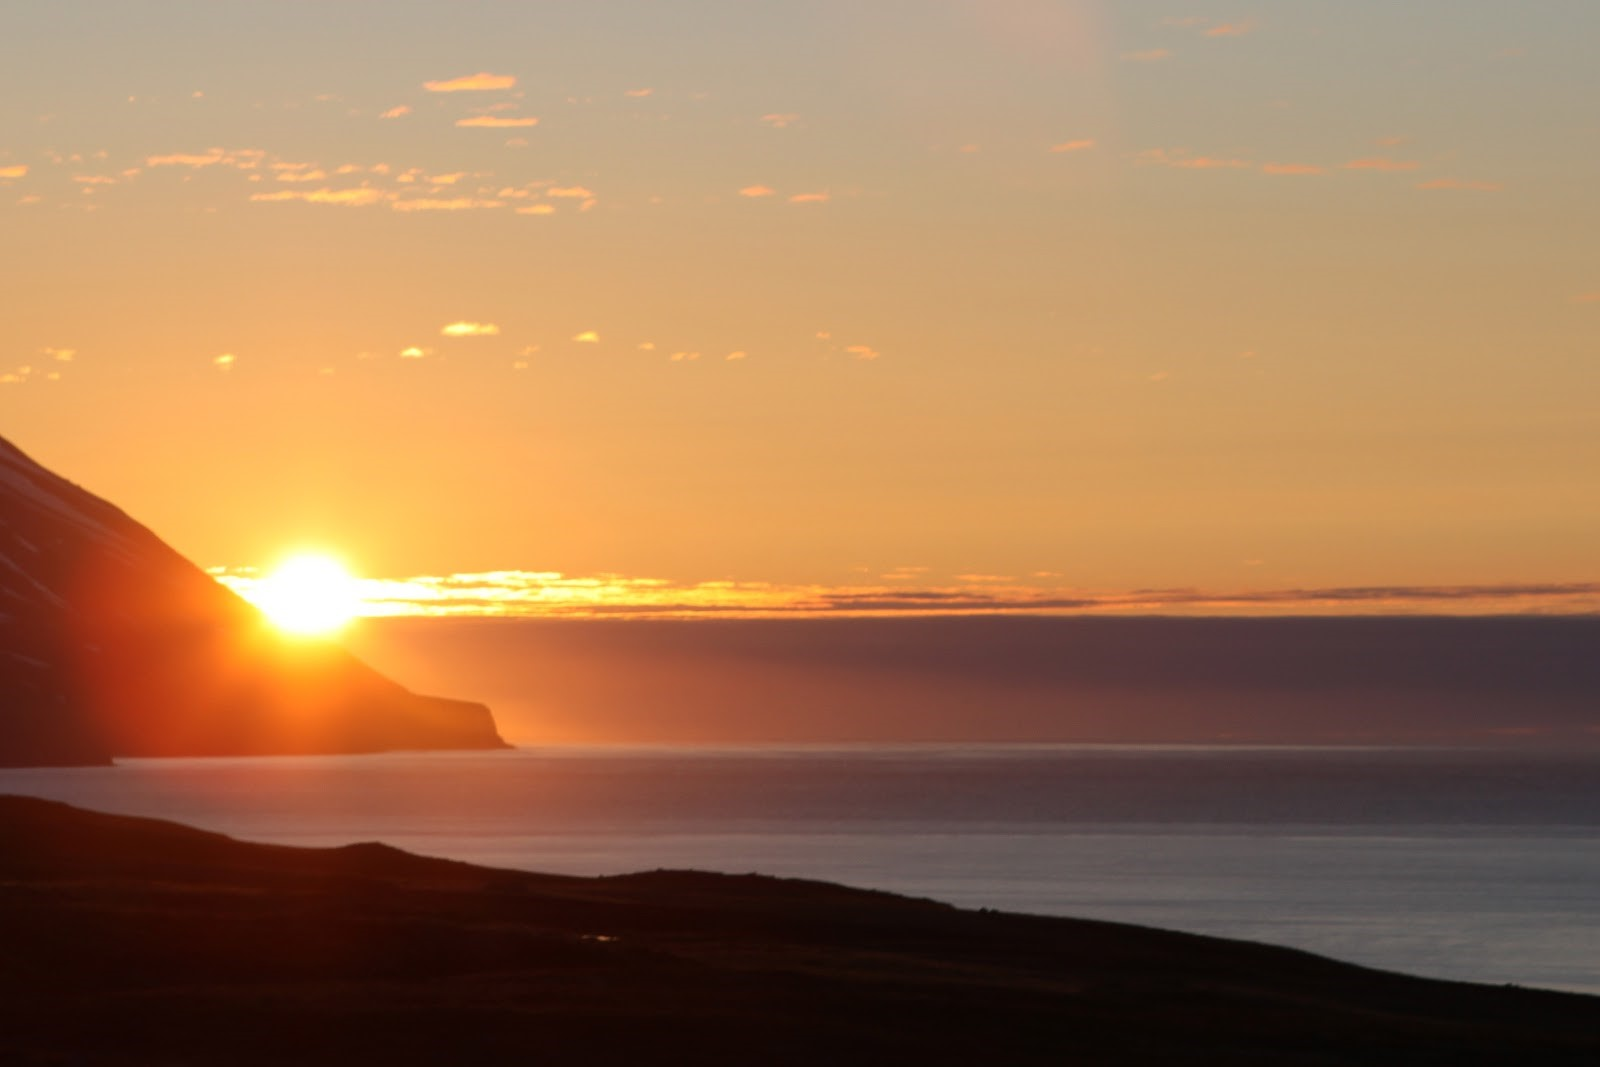 Midnight sun in Dalvik - Gudny Olafsdottir - Flickr - no changes were made